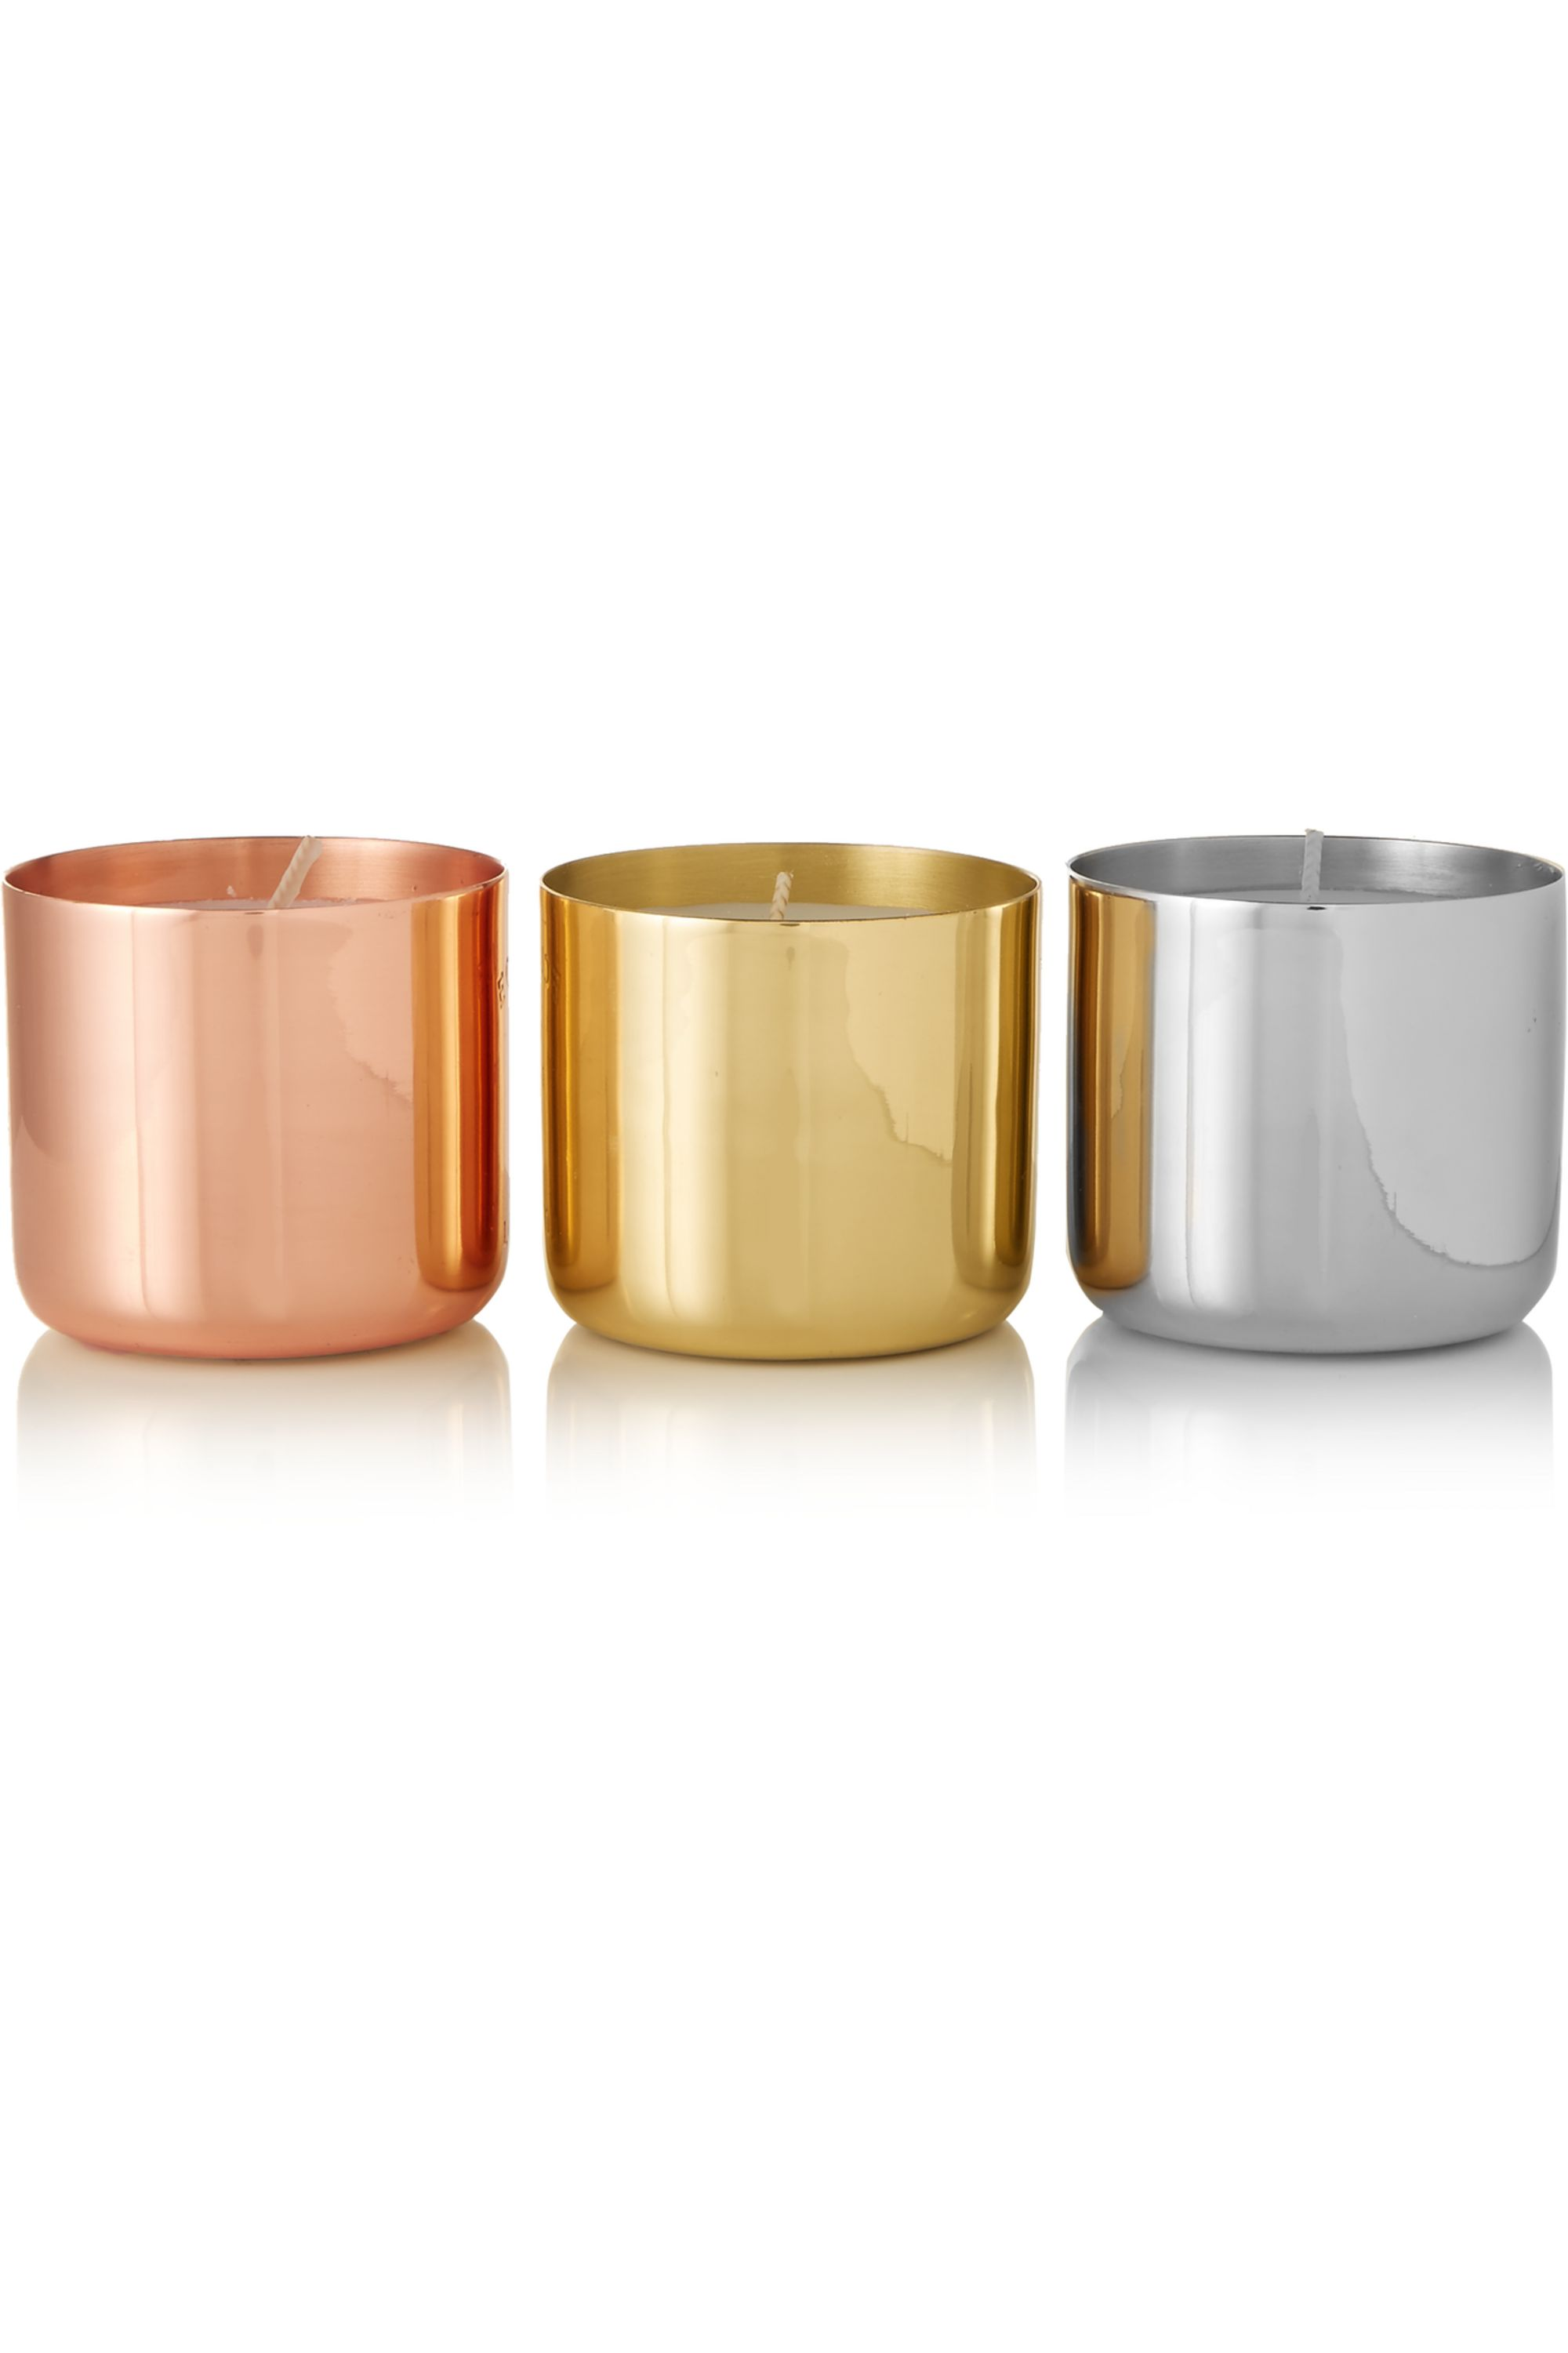 Tom Dixon London, Orientalist and Royalty set of three candles, 3 x 125g